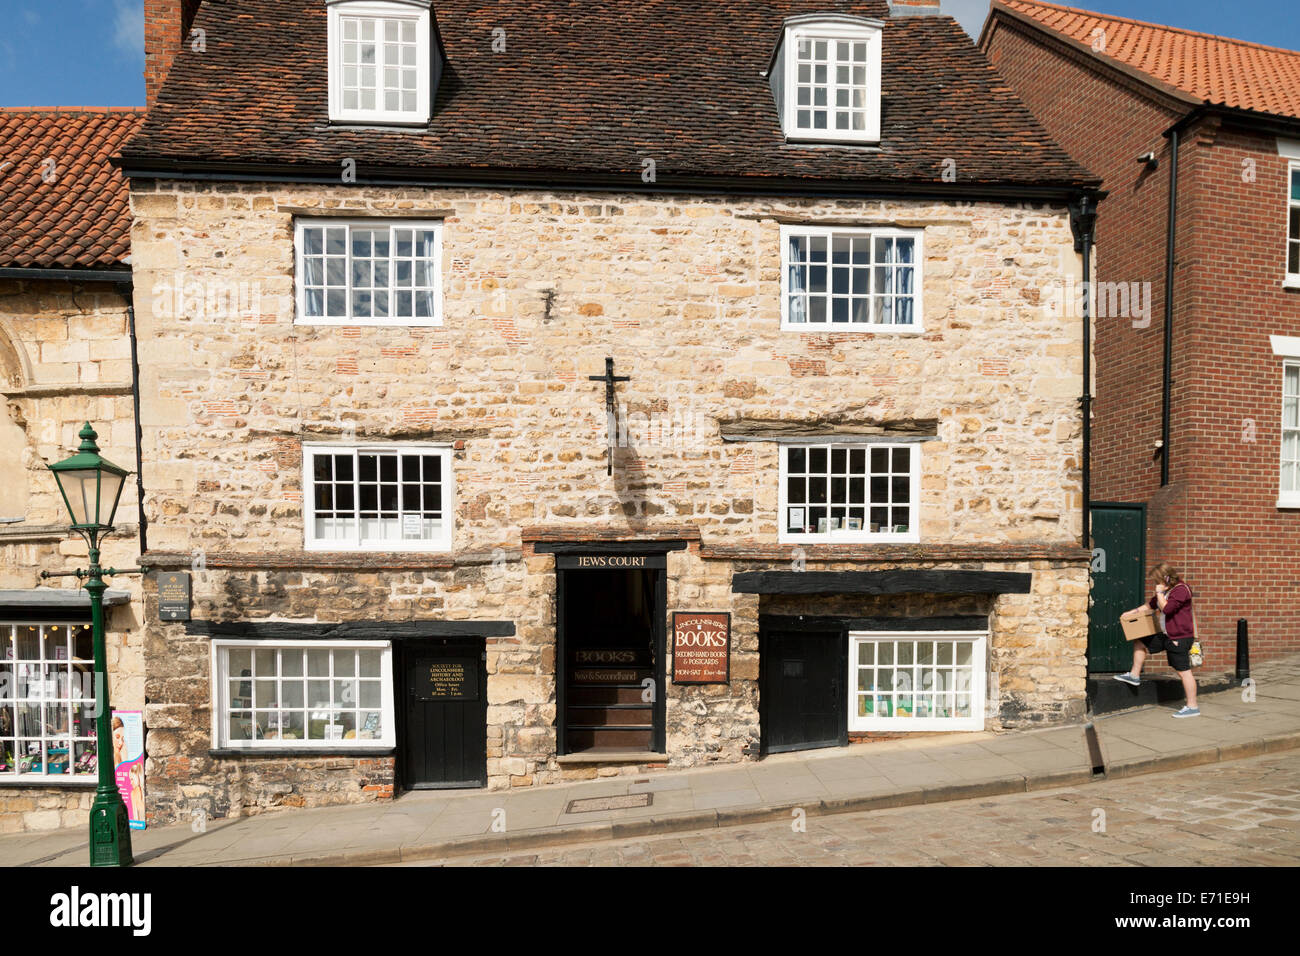 Jews Court, a medieval 12th century building, and the oldest jewish Synagogue in the UK,  Steep Hill, Lincoln Lincolnshire - Stock Image